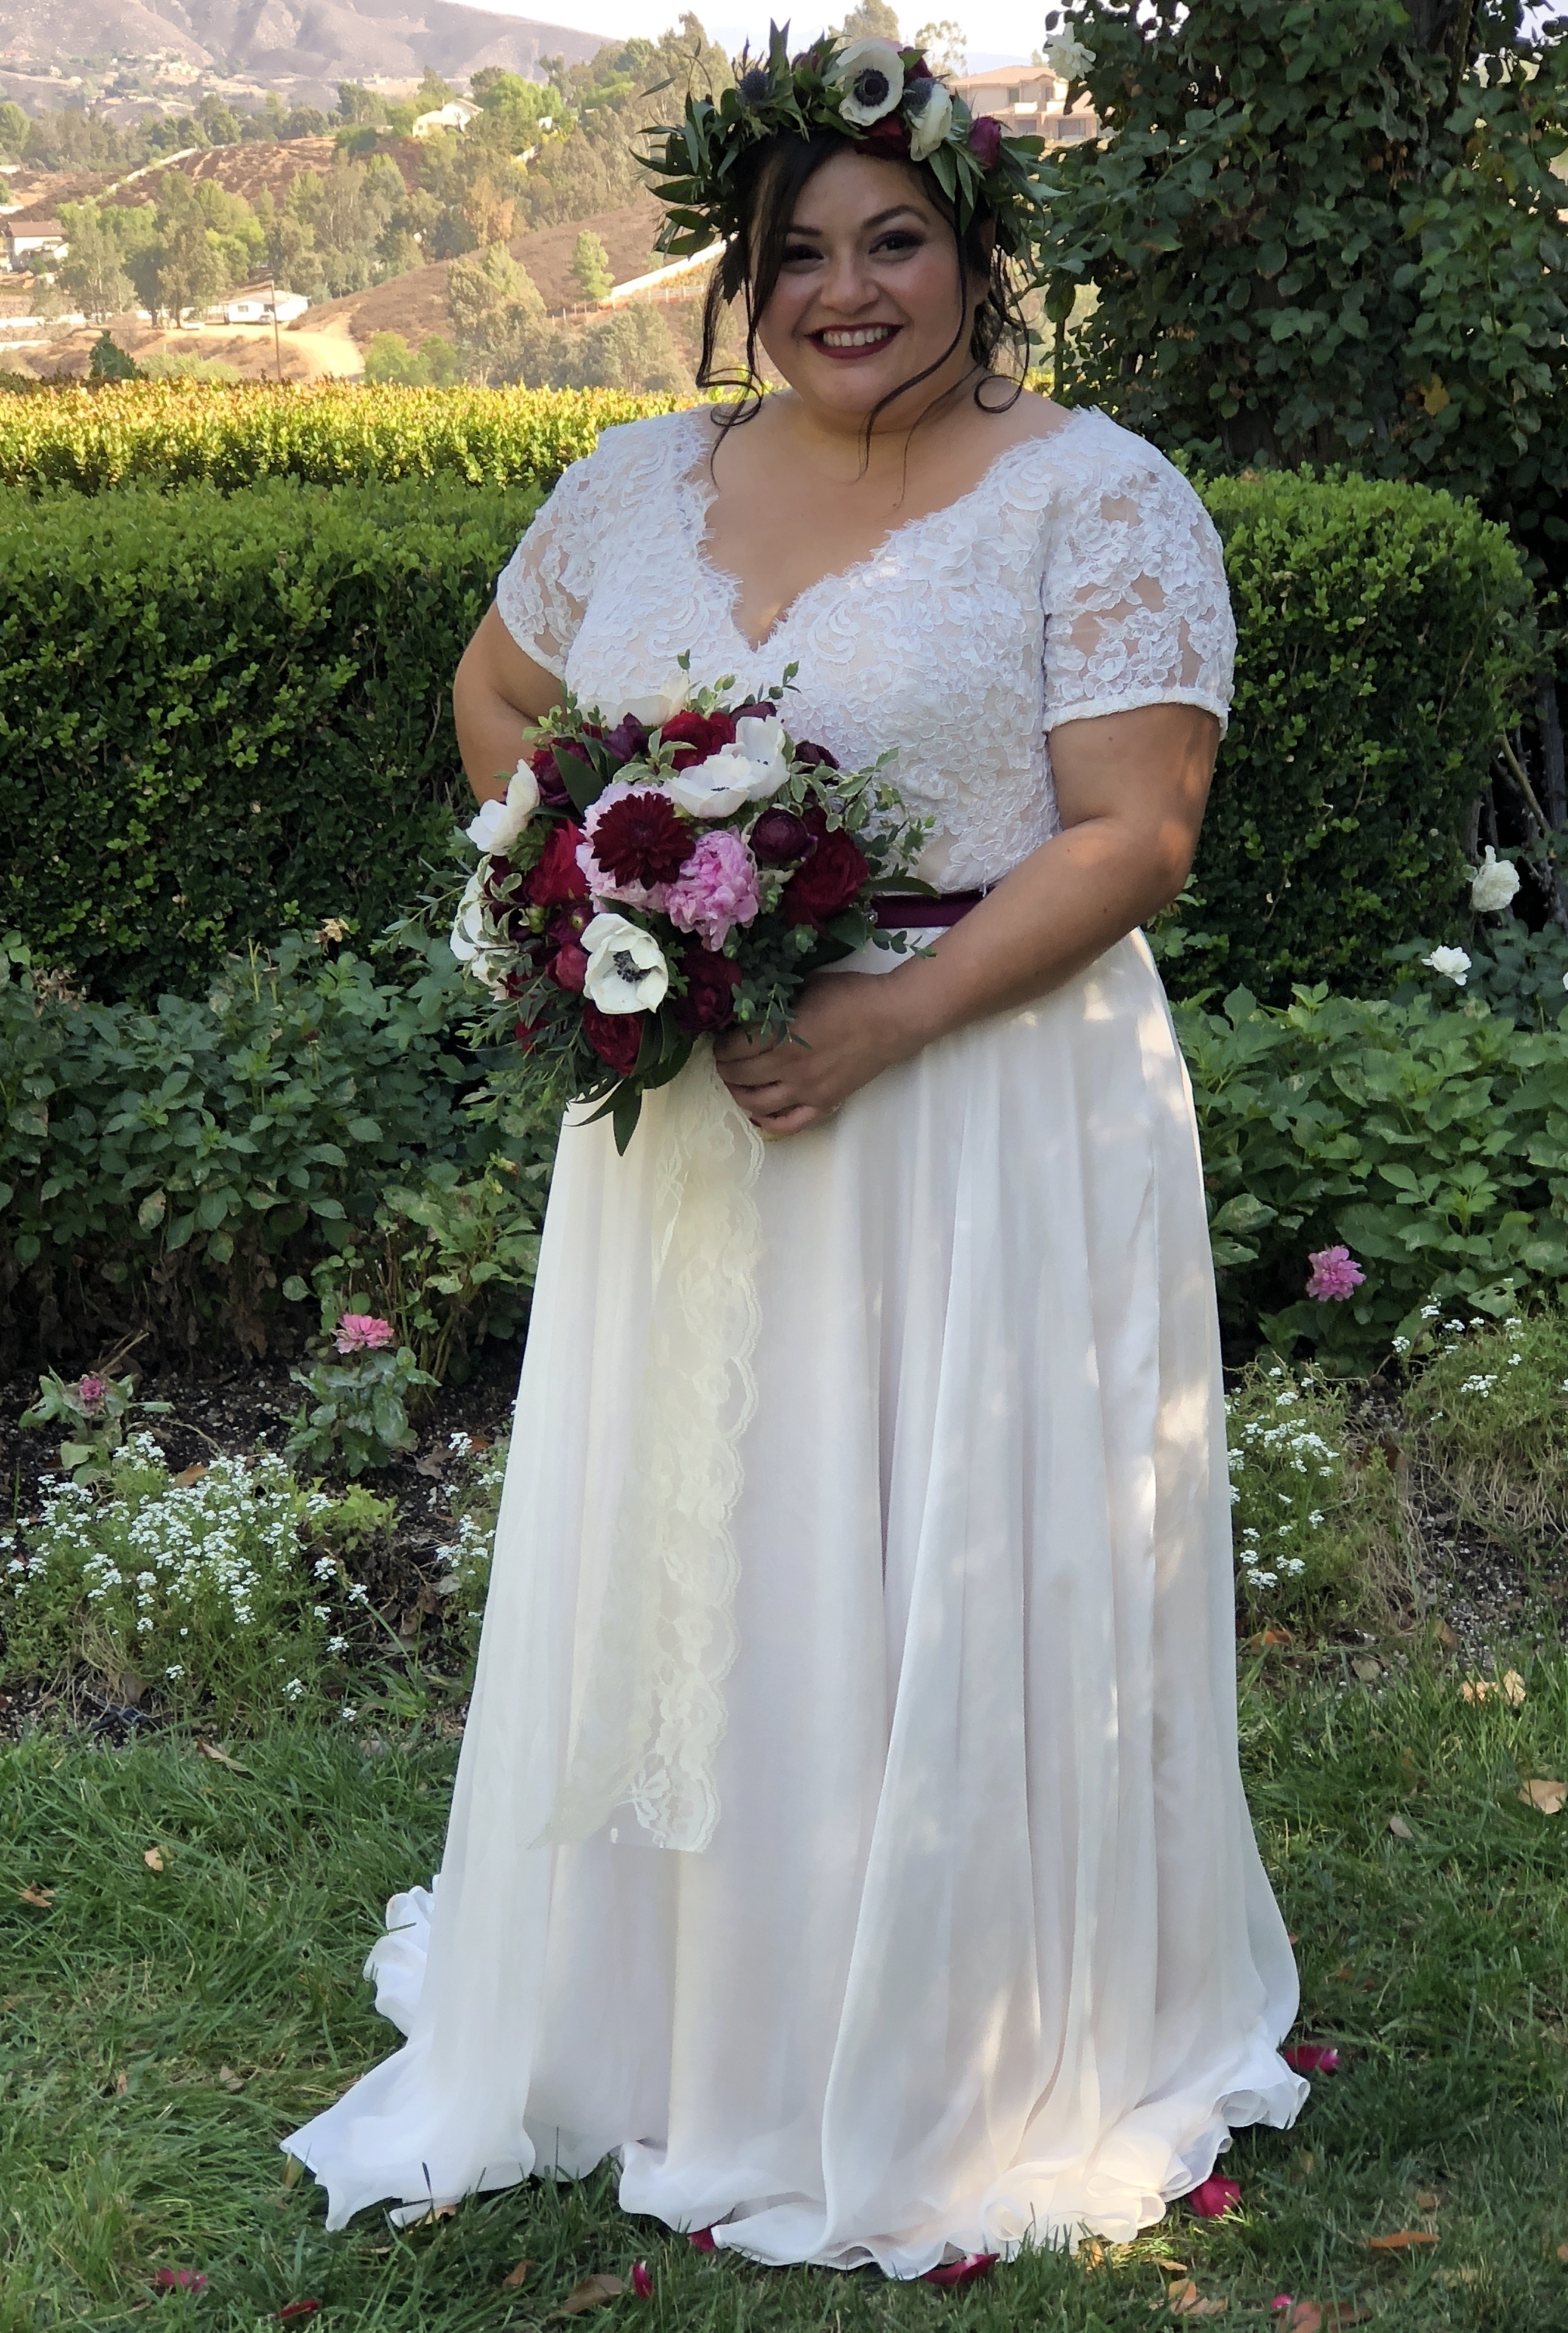 Anomalie specialized in making online wedding dresses for plus sized brides, including dresses with delicate sheet lace and short sleeves.